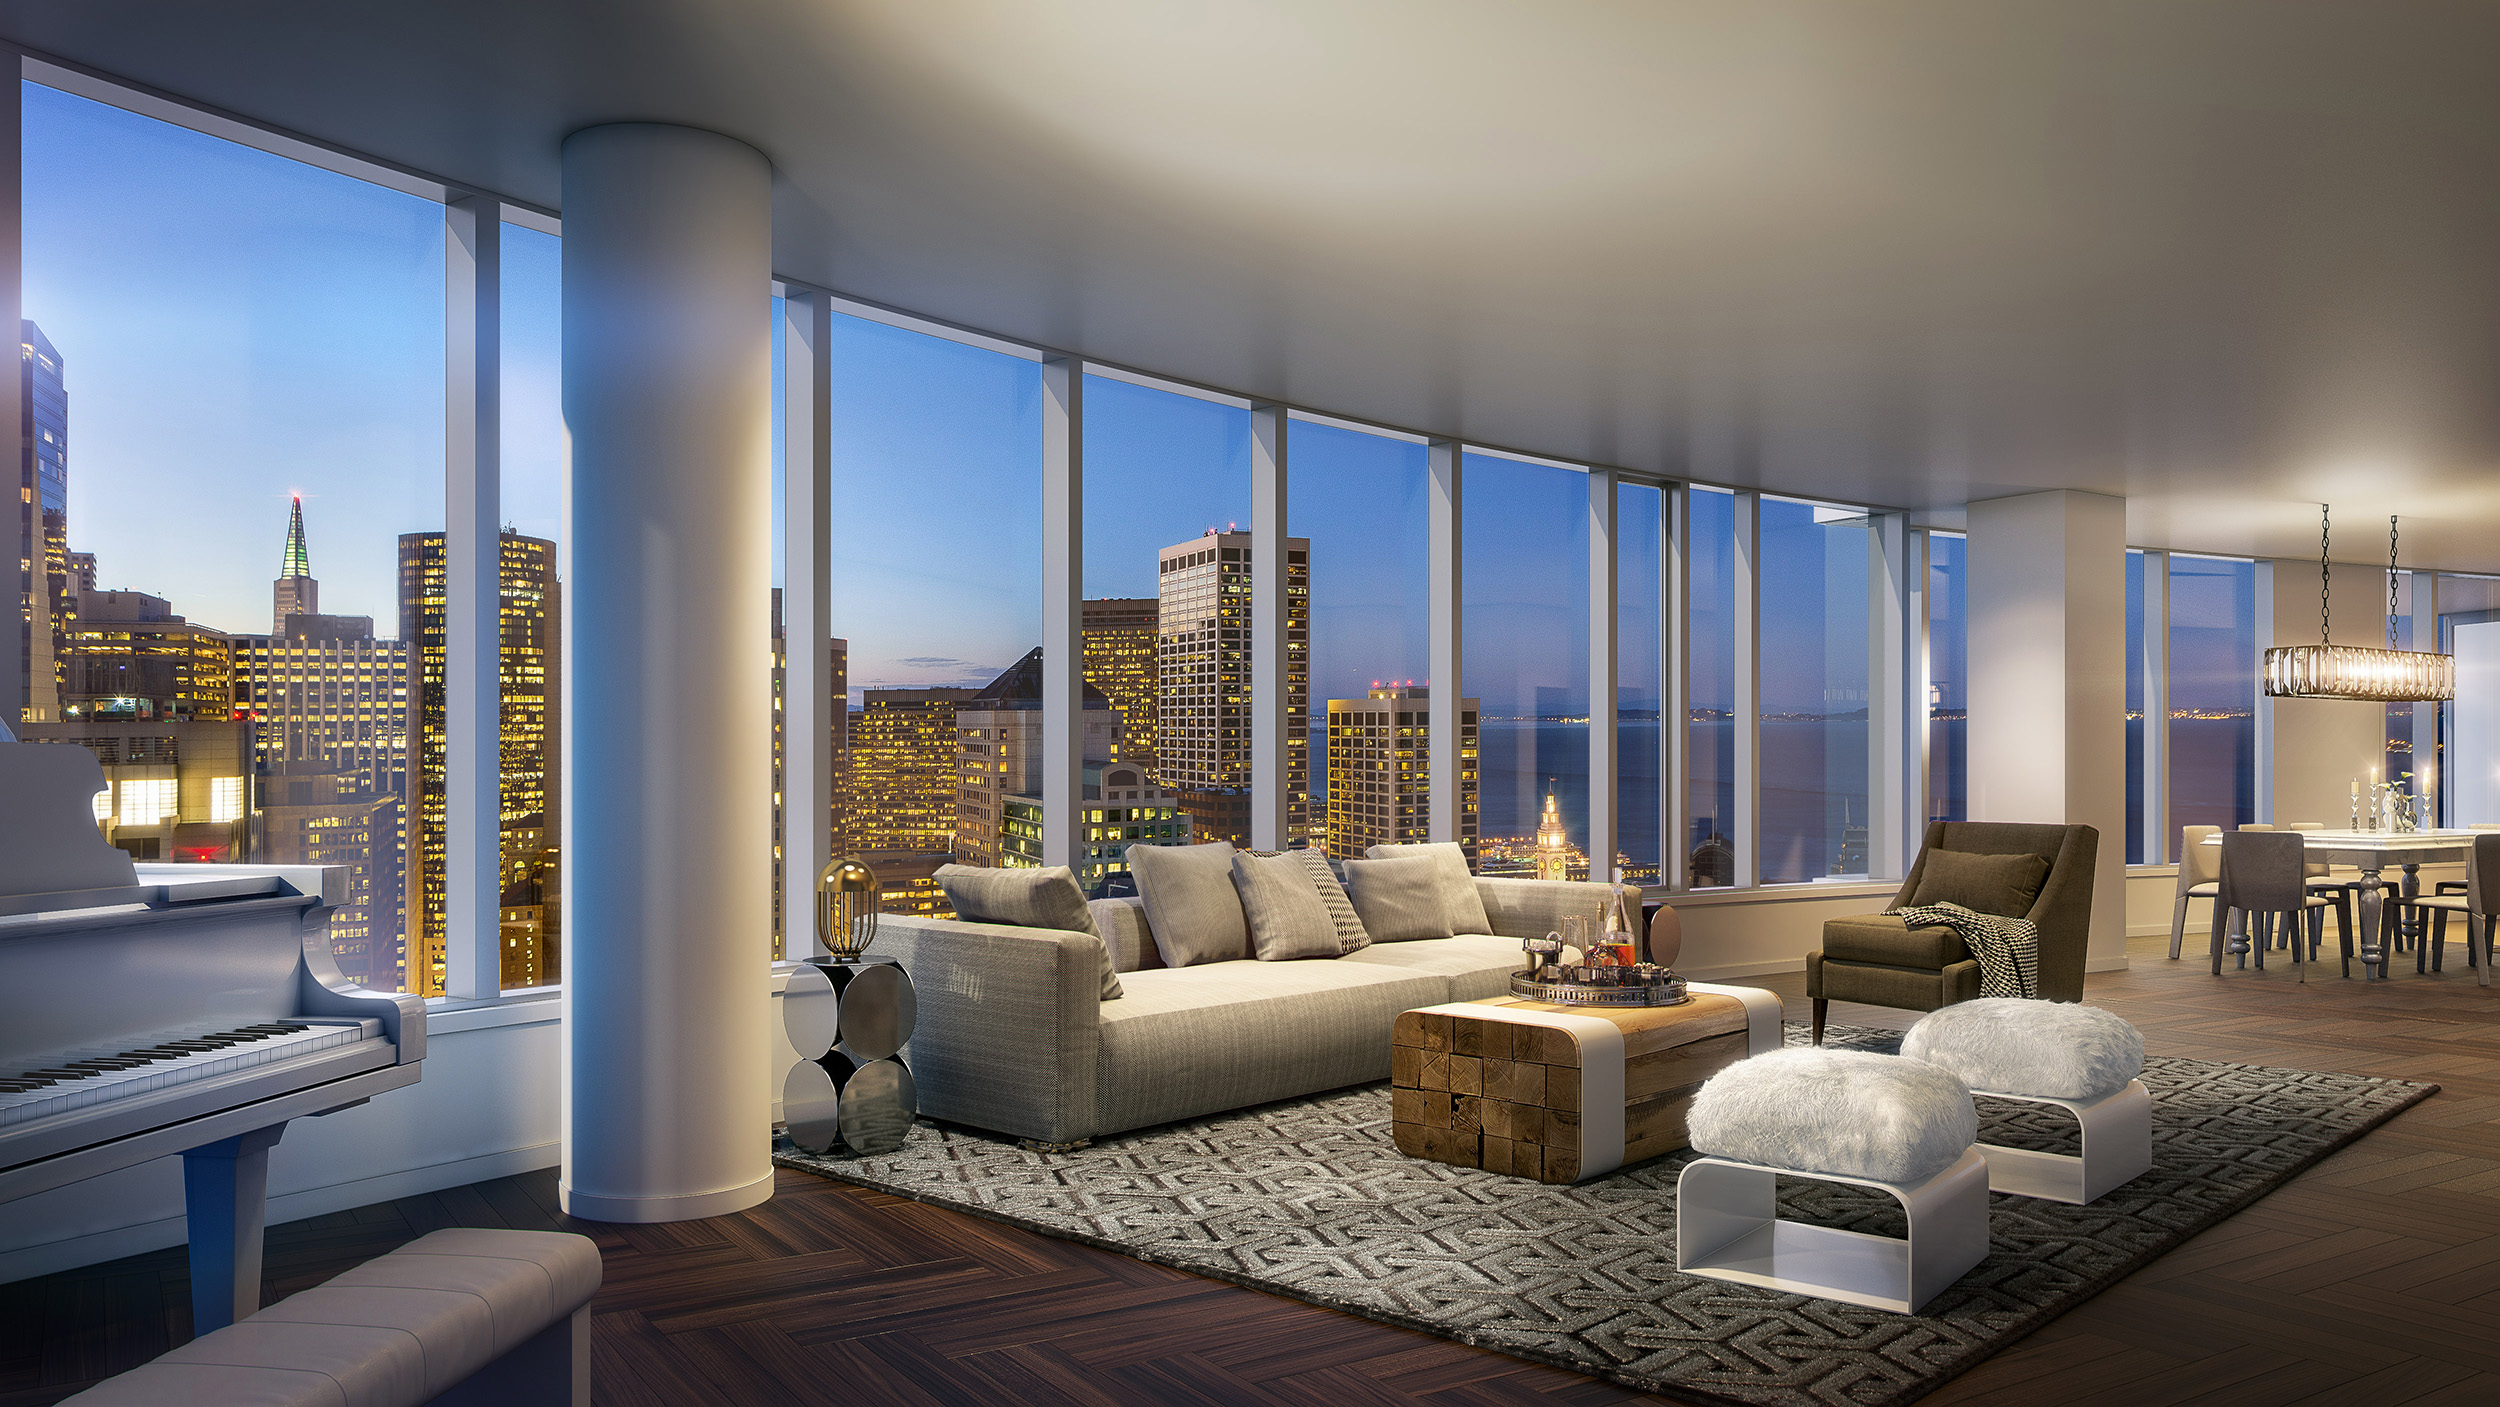 2 Bedroom Suites Chicago San Francisco S Most Expensive Listing 49 Million Lumina